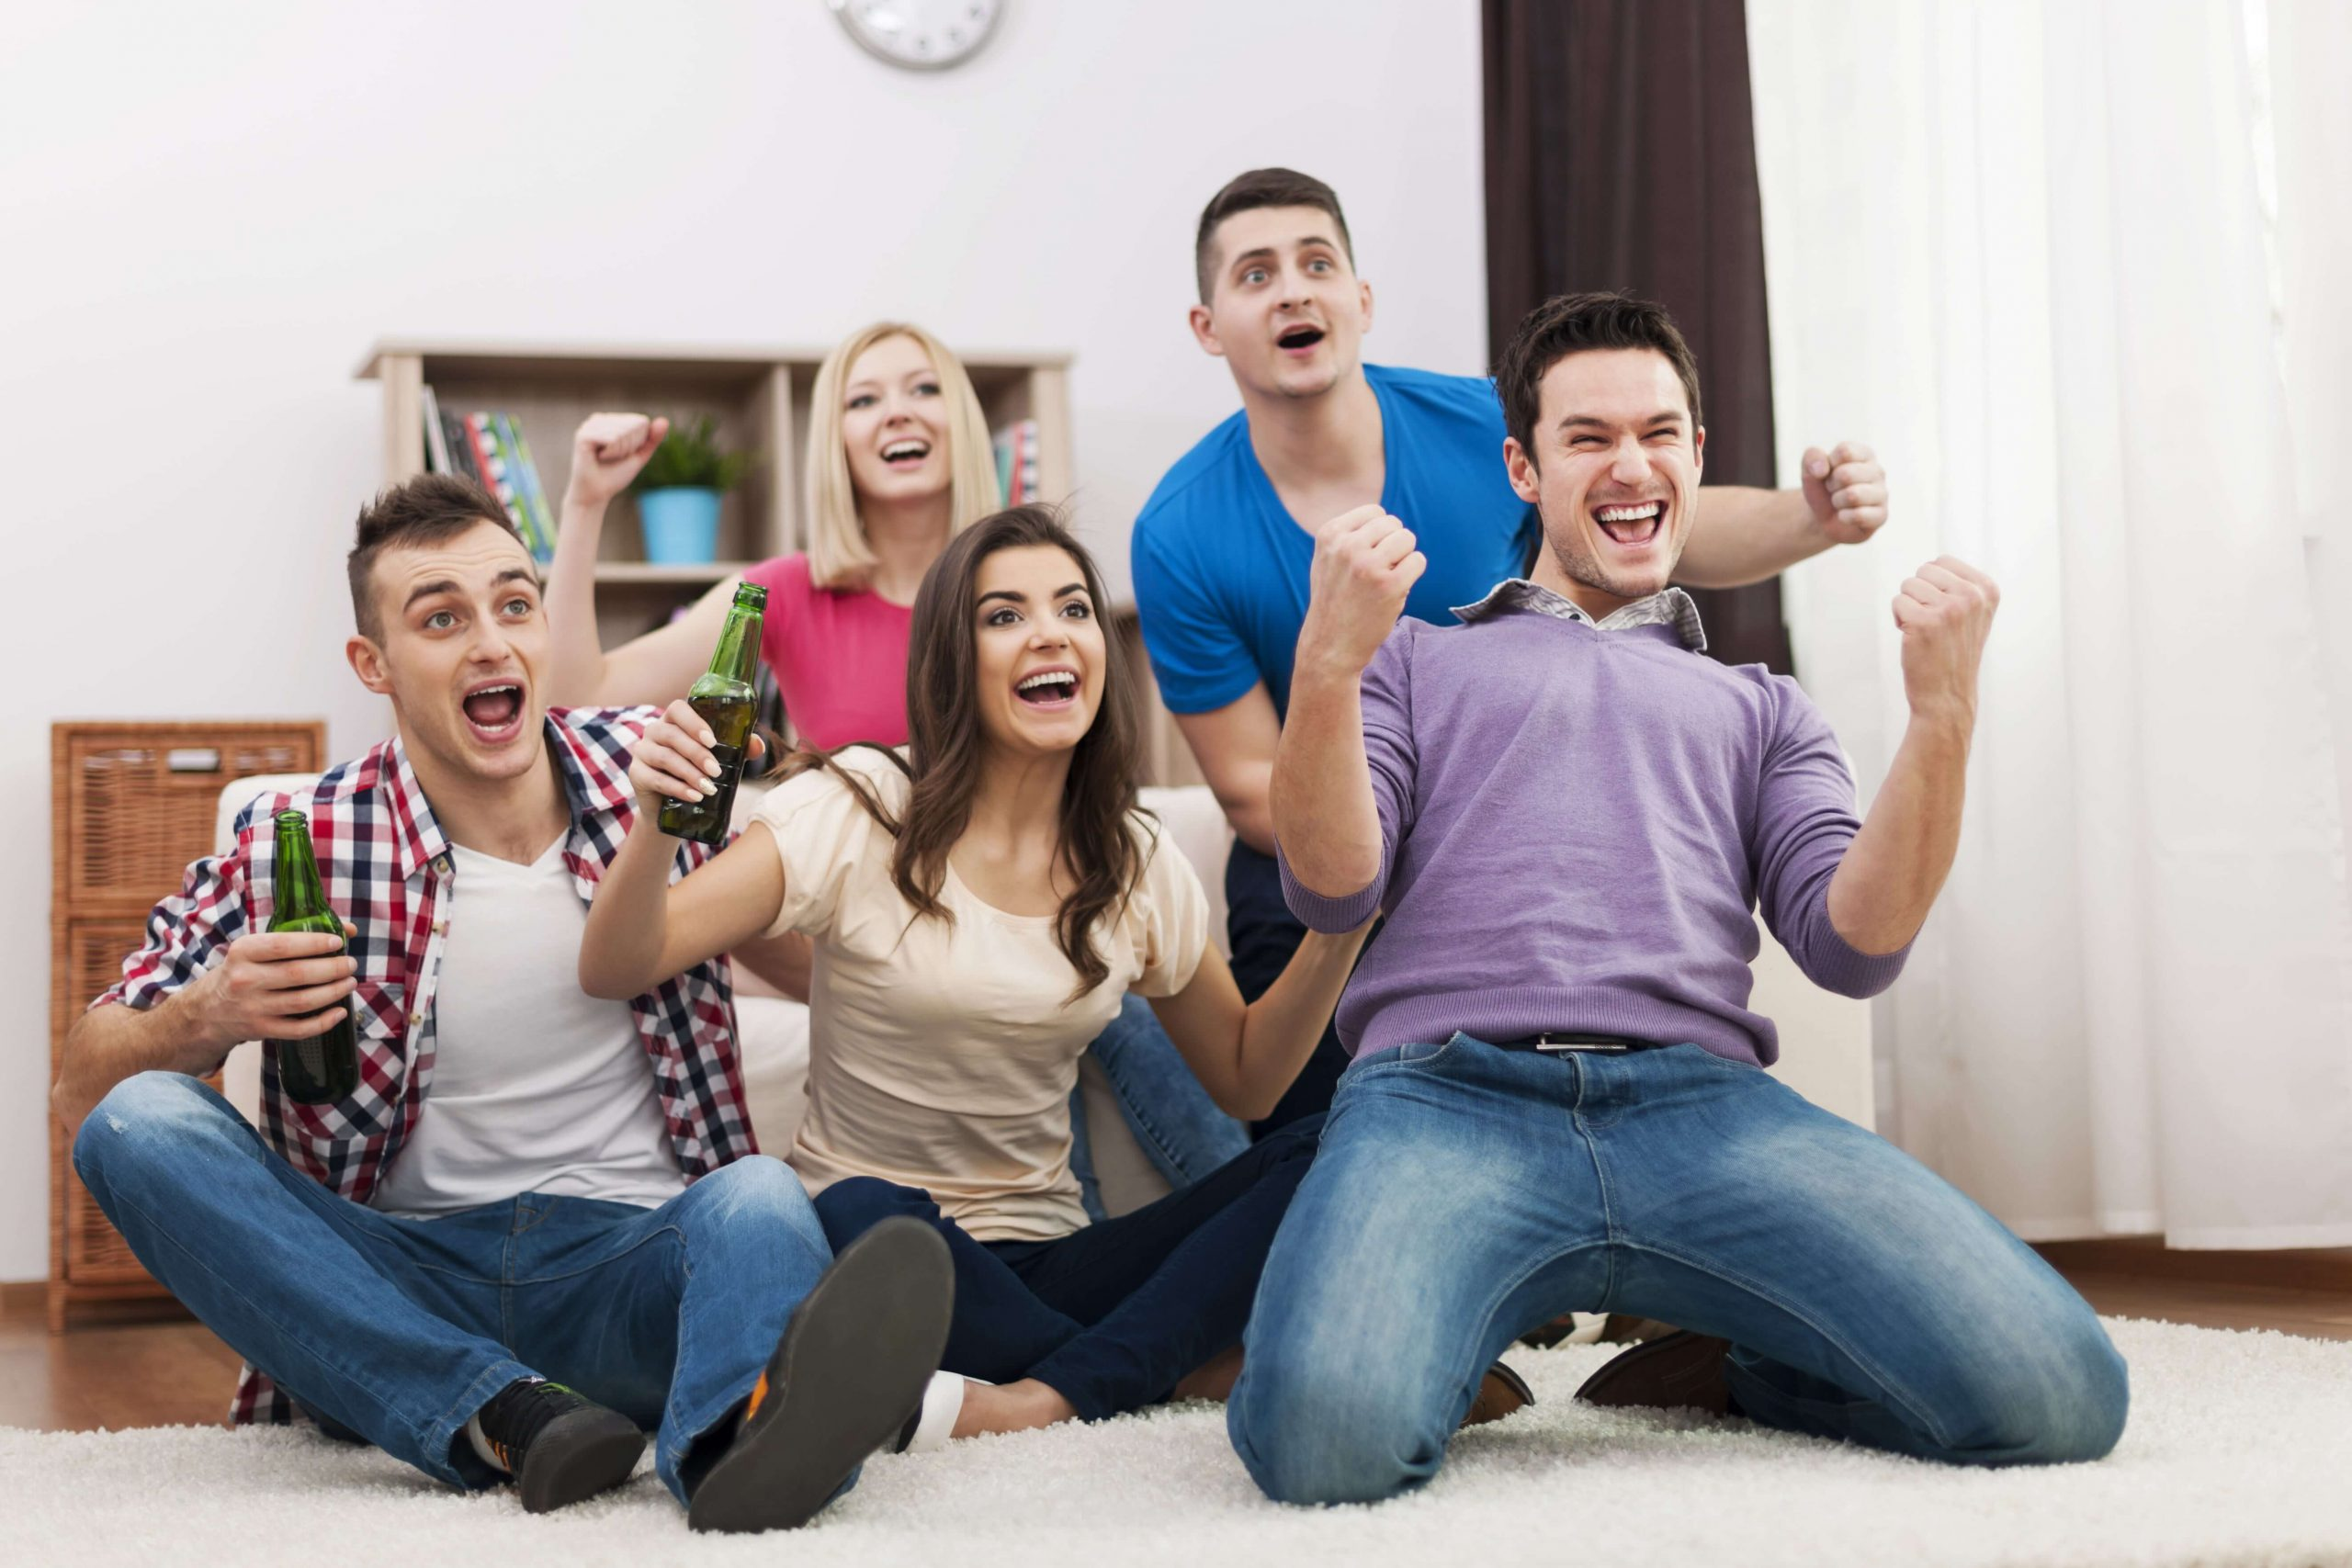 young-friend-watching-tv-and-cheering-soccer-min (1)